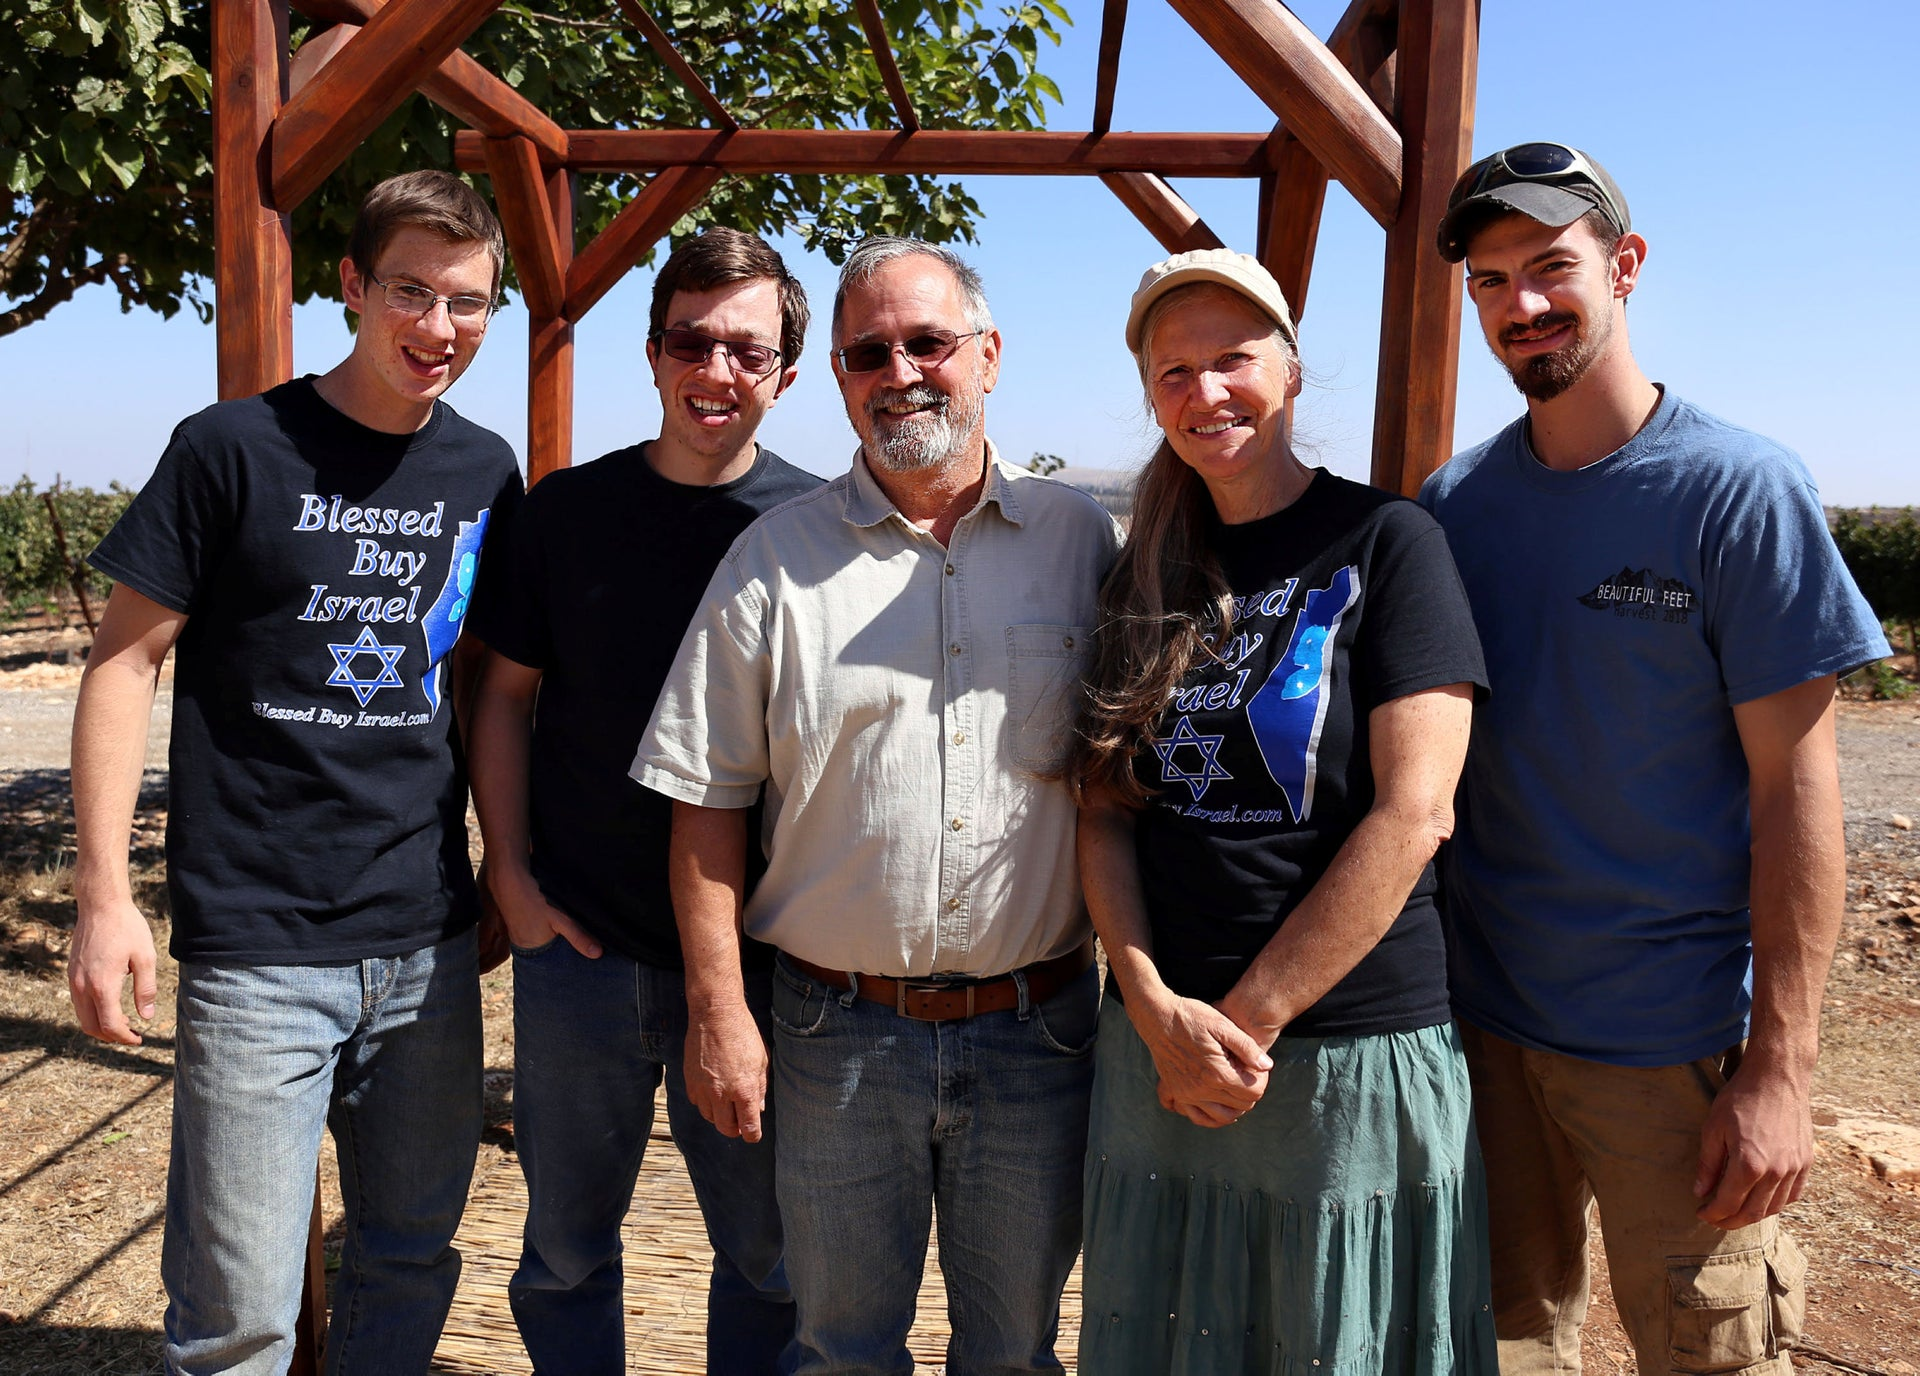 Steve and Doris Wearp, center, with three of their sons in the West Bank settlement of Har Bracha, September 12, 2018.